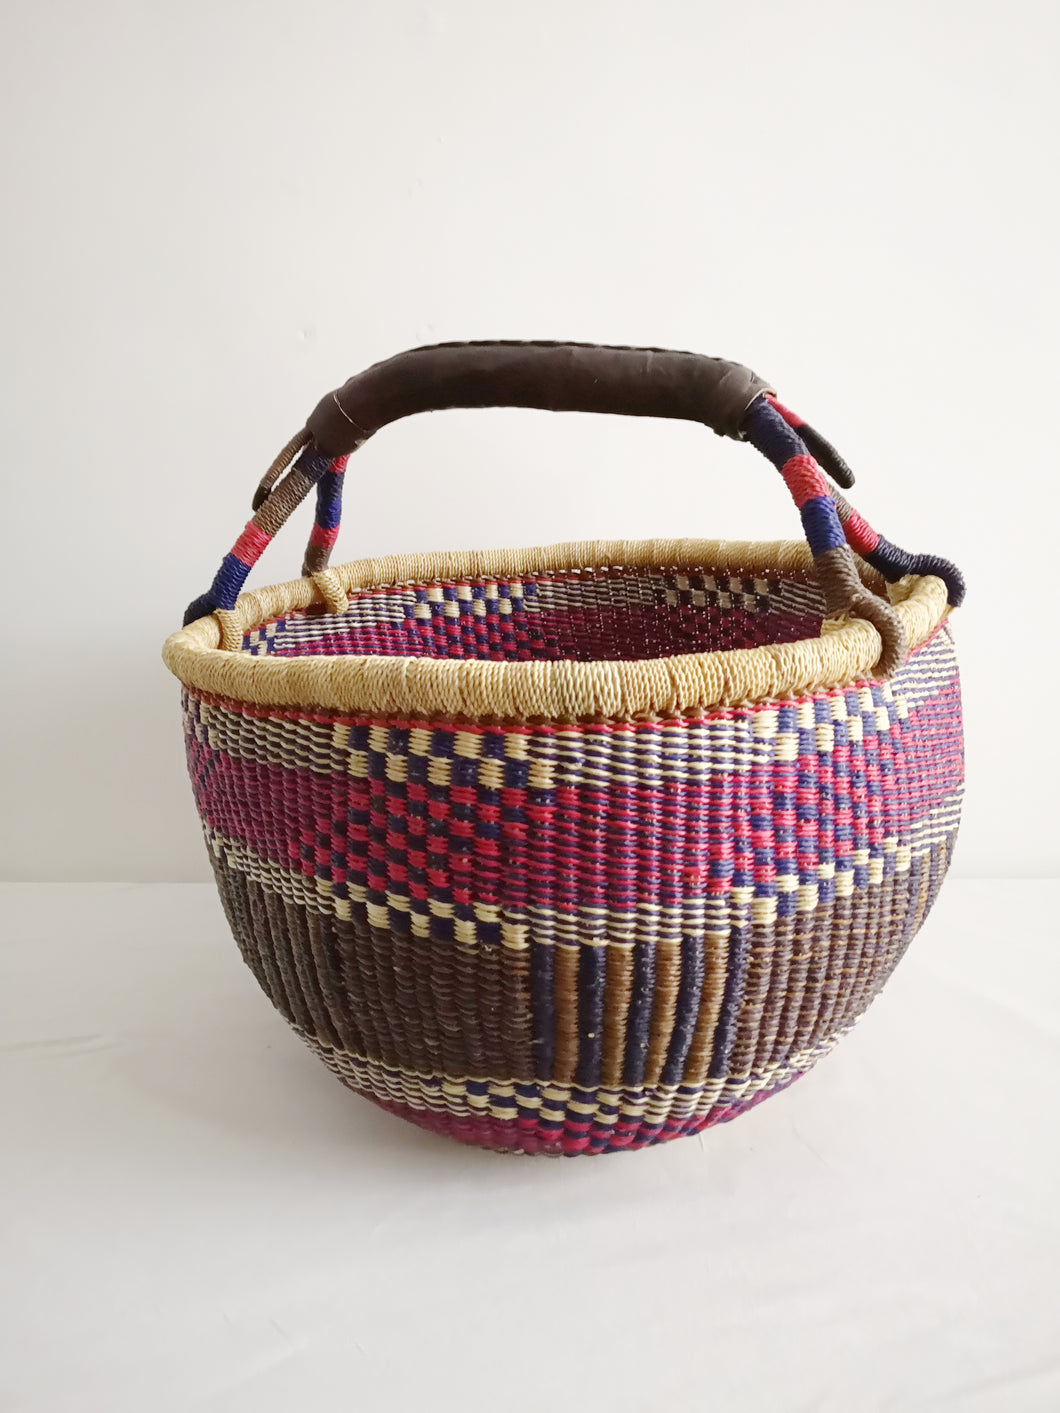 Large Round Market Basket - Pink, Blue and Brown